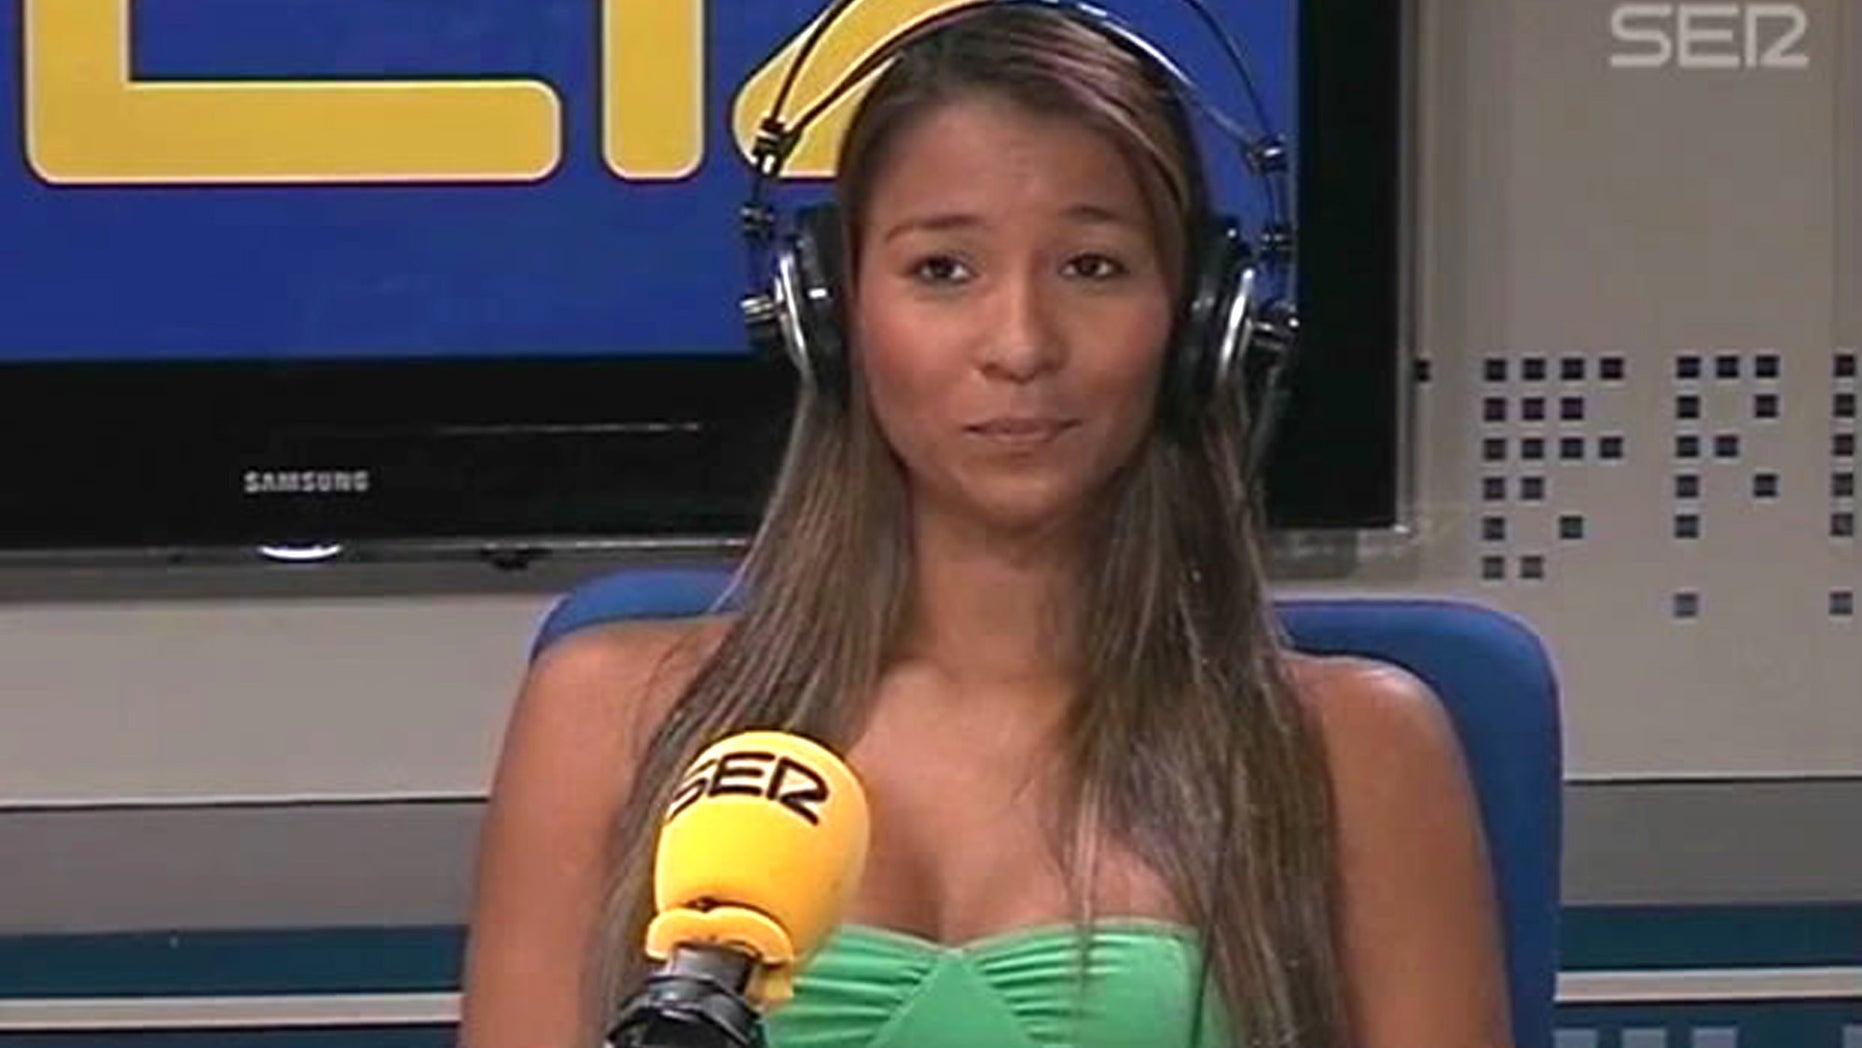 May 4, 2012:  Frame grab by Spanish radio station Cadena SER website shows Dania Londoño Suárez, the woman who triggered the U.S. Secret Service scandal in Colombia.